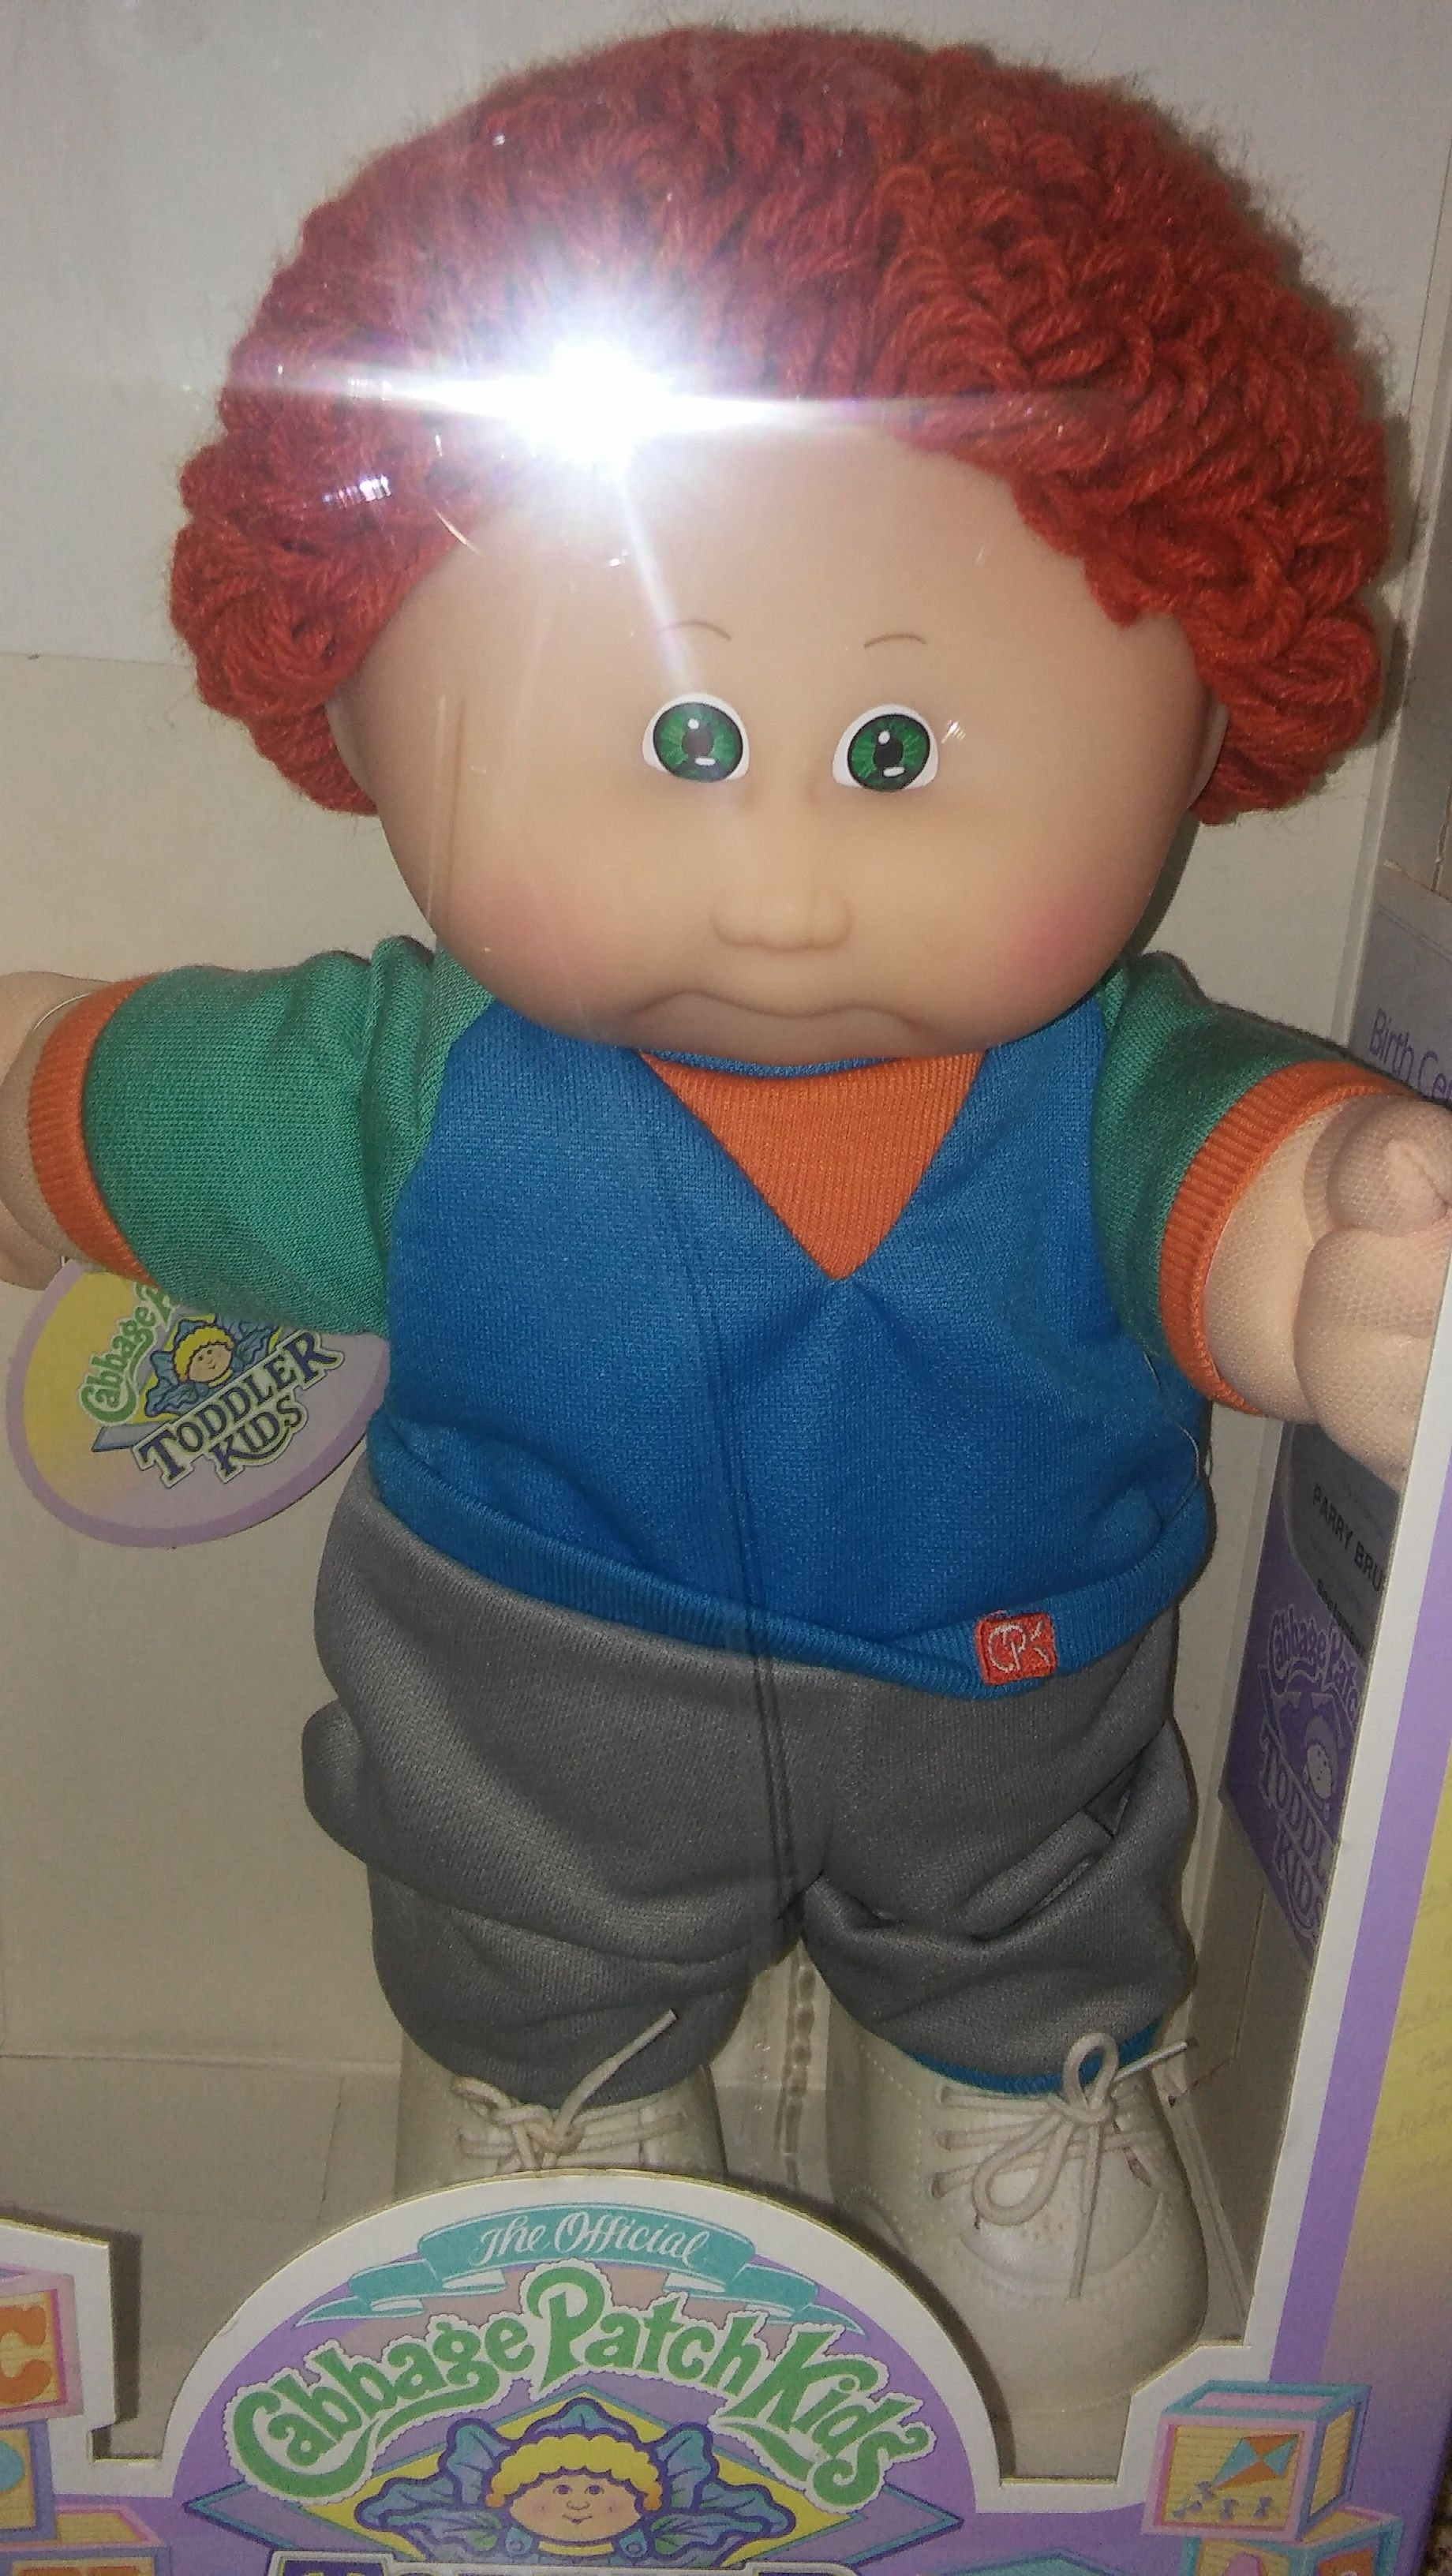 Cabbage Patch Kid Toddler Known As Parry Bruno Cabbage Patch Kids Dolls Cabbage Patch Kids Cabbage Patch Dolls